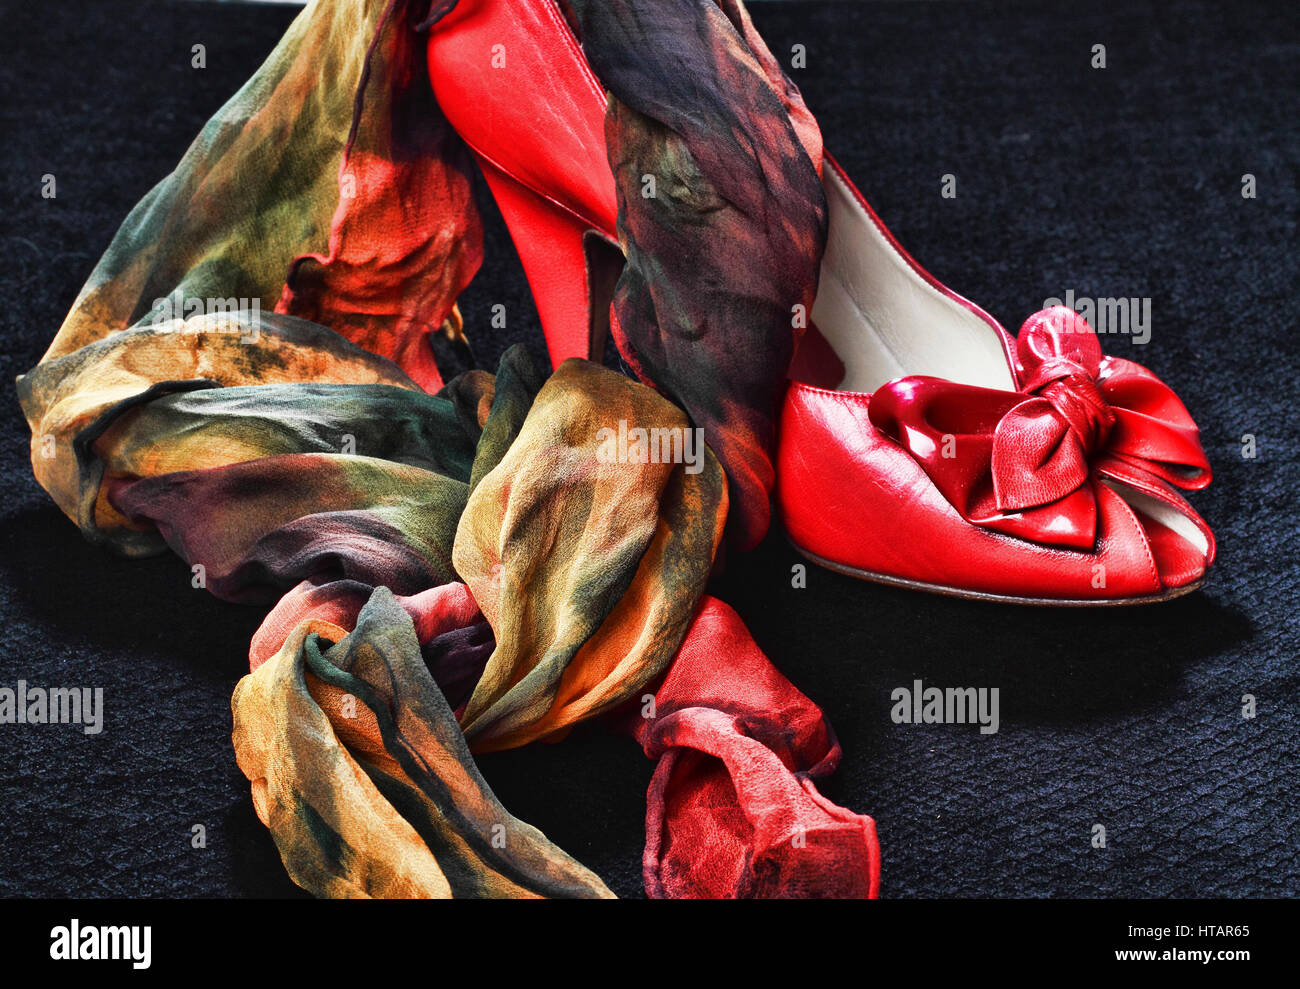 a red shoe with a bow in front, on top and in front of it, a silk scarf in yellow,green,orange,red and yellow. Placed - Stock Image